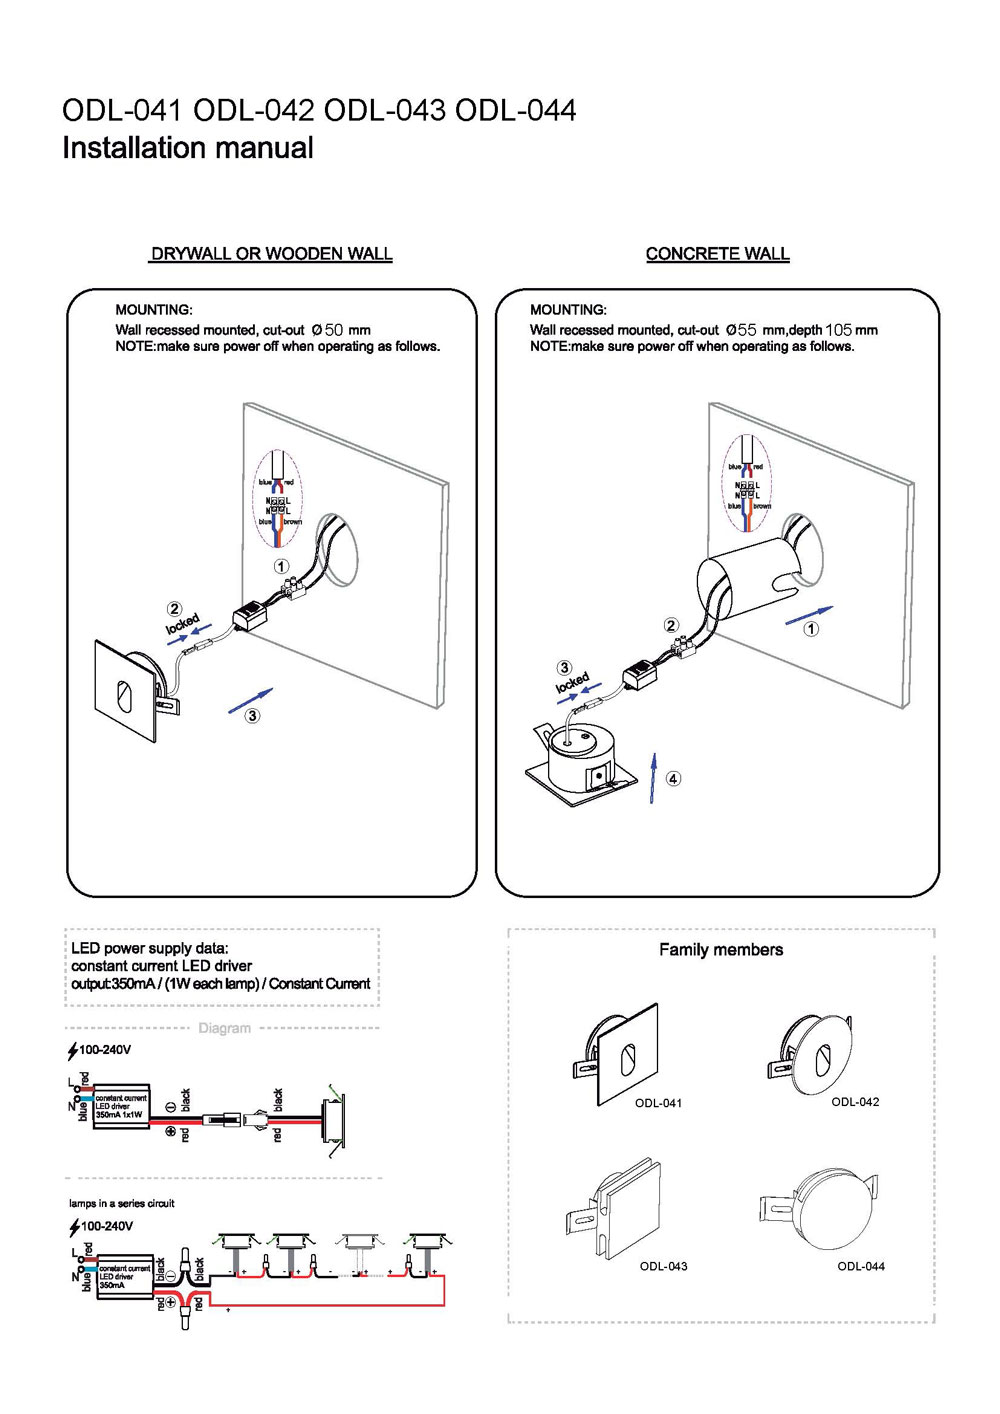 ODL041 outdoor wall light installation guide